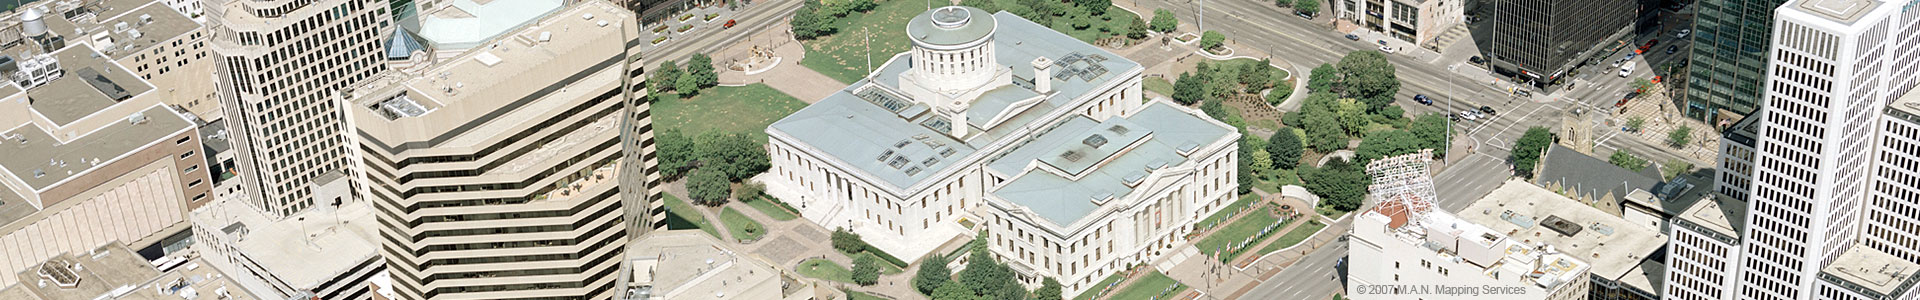 fslide5_statehouse-MAN-Mapping-Services-aerial